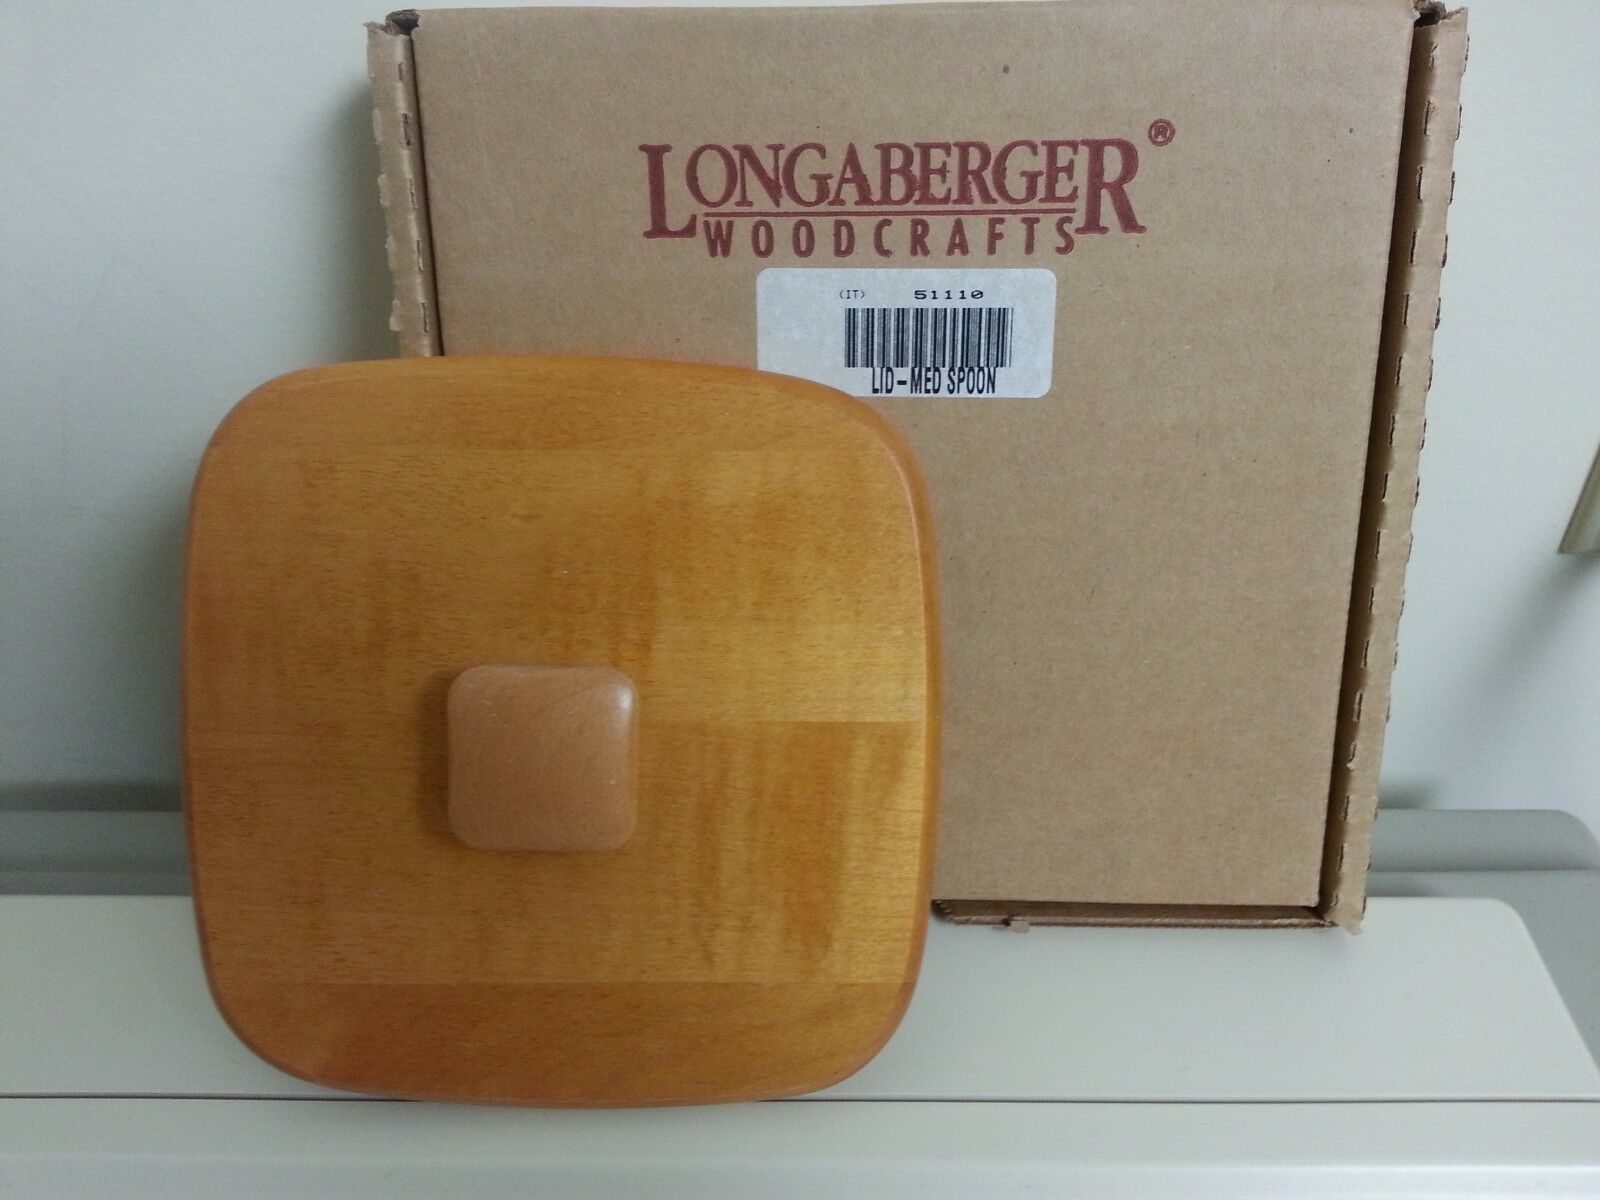 Primary image for Longaberger Medium Spoon Classic Stain Wooden Lid Only New Sealed 51110 USA Made